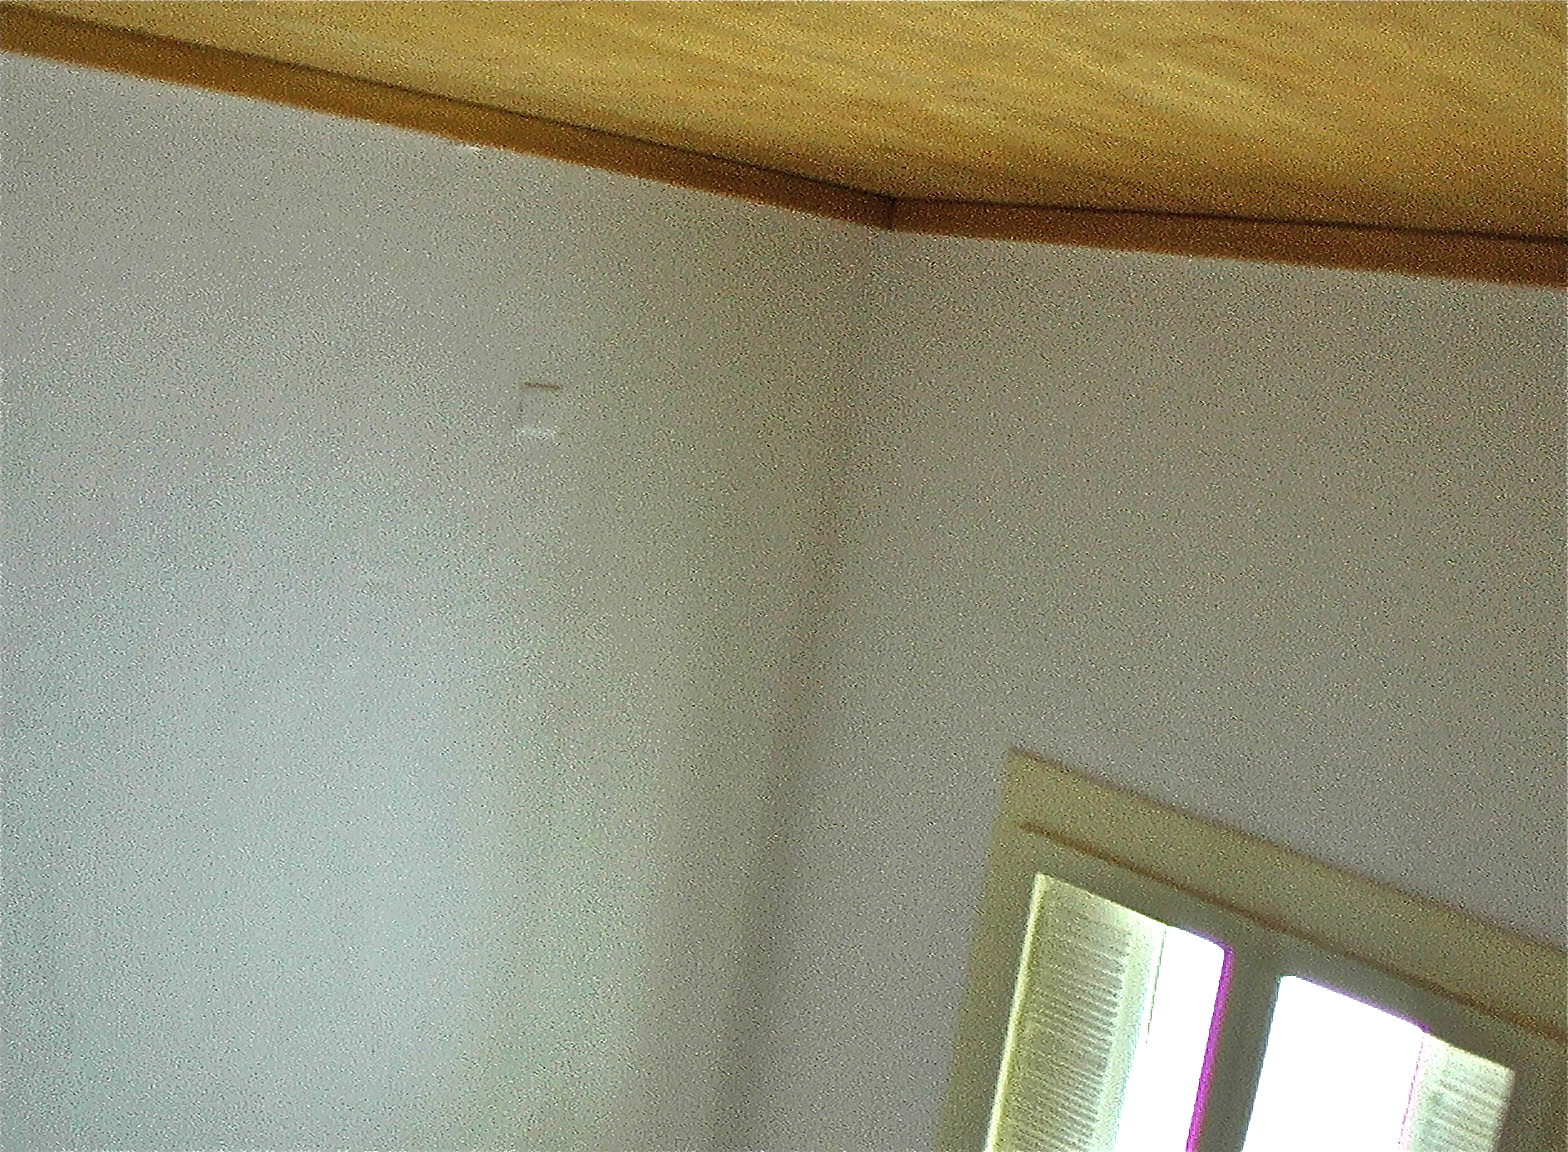 2004 the view from bed,interior 5 .jpg